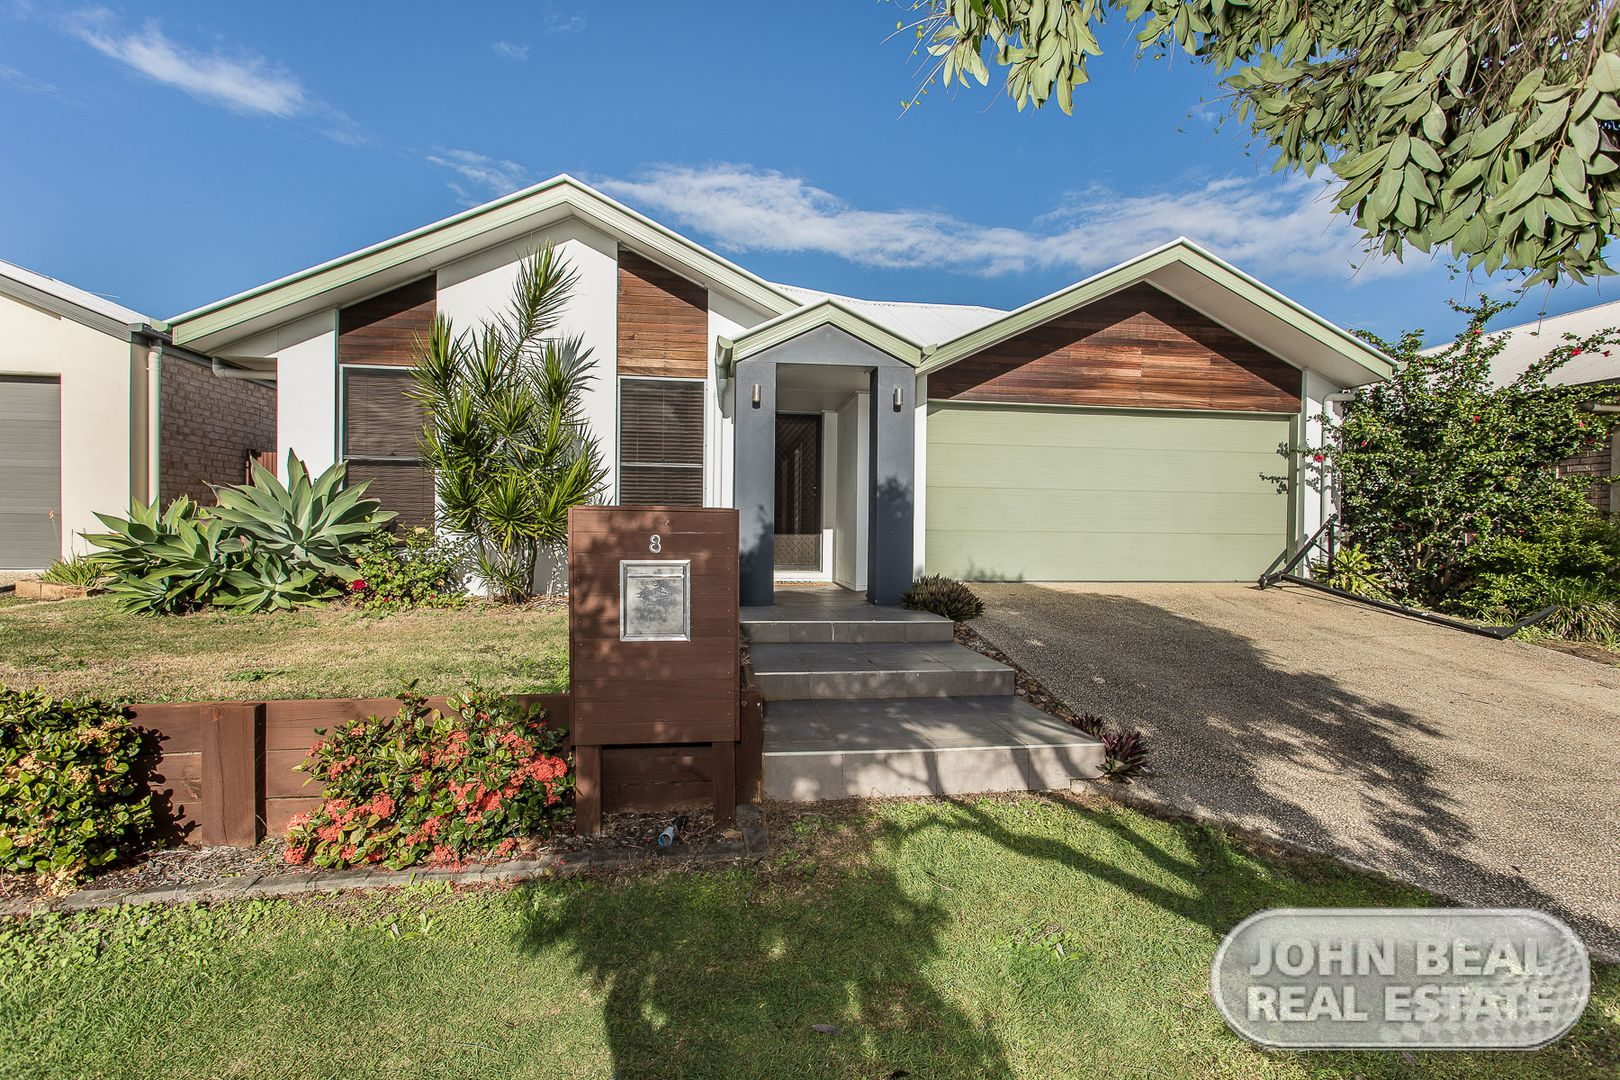 8 Scenic Dr, Murrumba Downs QLD 4503, Image 0